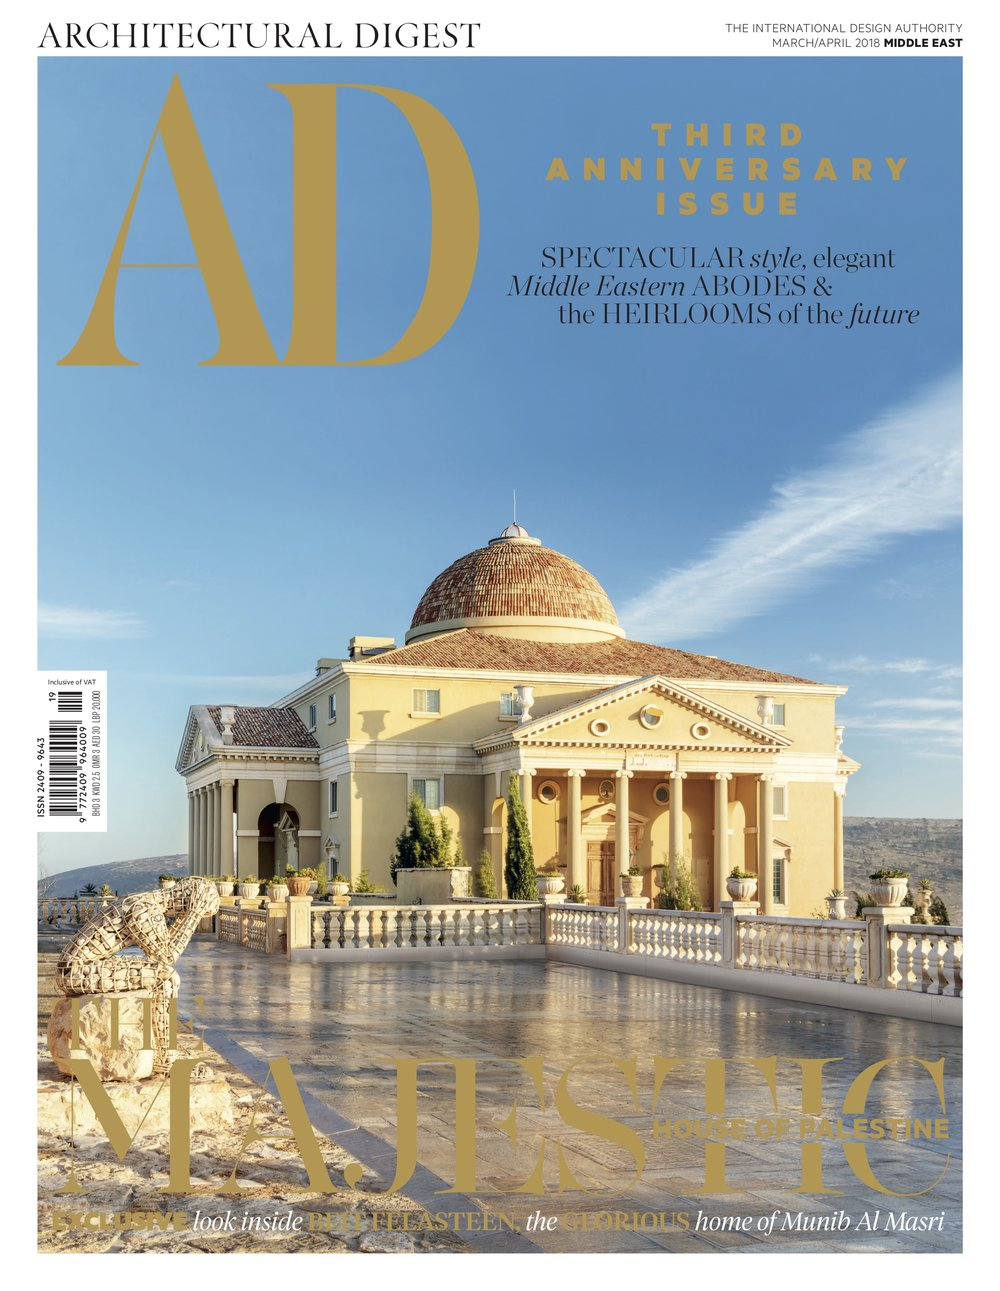 Architectural Digest , Cover and main feature. Click View below to open PDF.